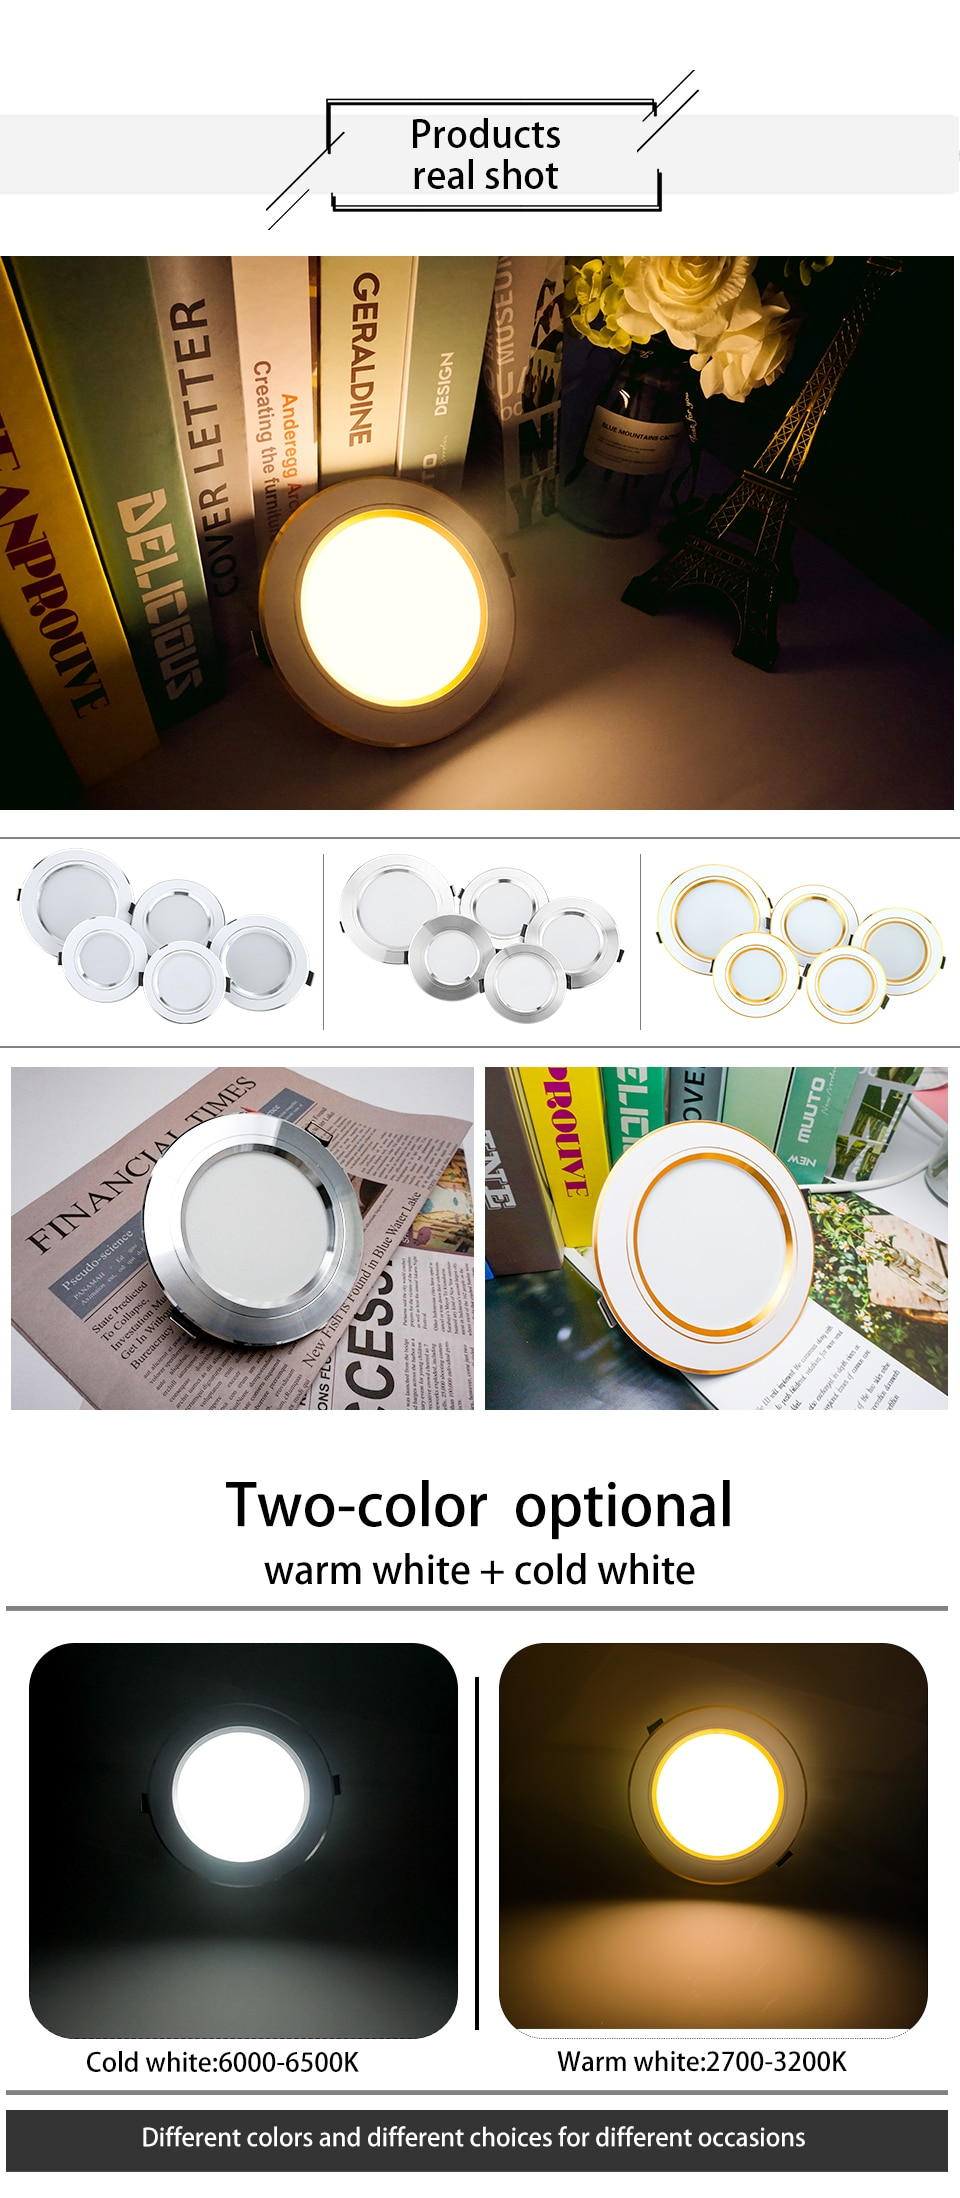 H90f2dfccda1448448862bbd83cc0c4794 - 10pcs/lot LED Downlight 5W 9W 12W 15W 18W Recessed Round LED Ceiling Lamp AC 220V-240V Indoor Lighting Warm White Cold White